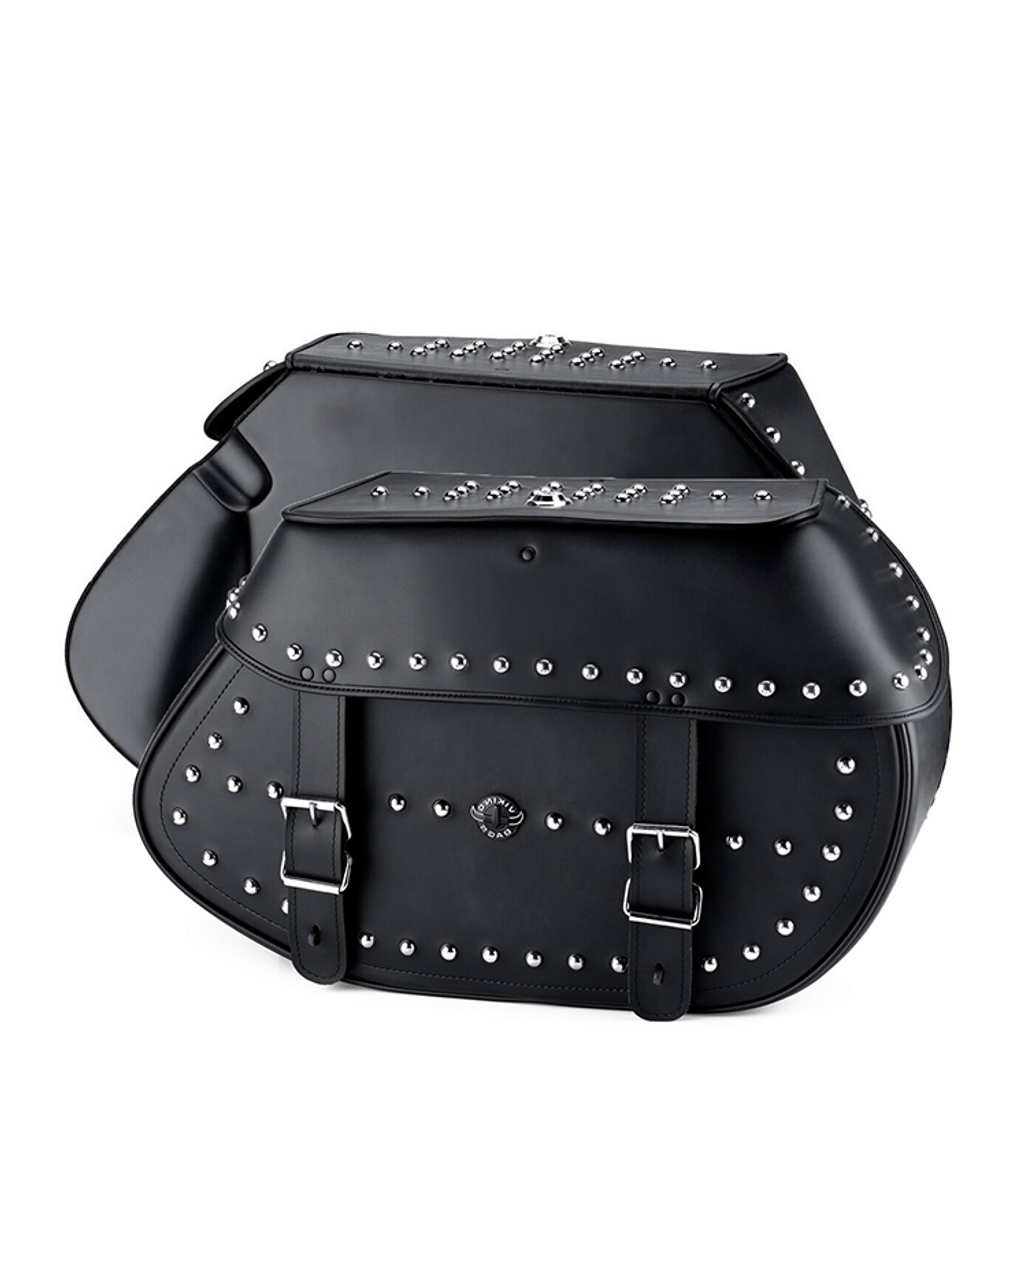 Viking Specific Studded Extra Large Saddlebags For Harley Softail Standard FXST Both Bags View